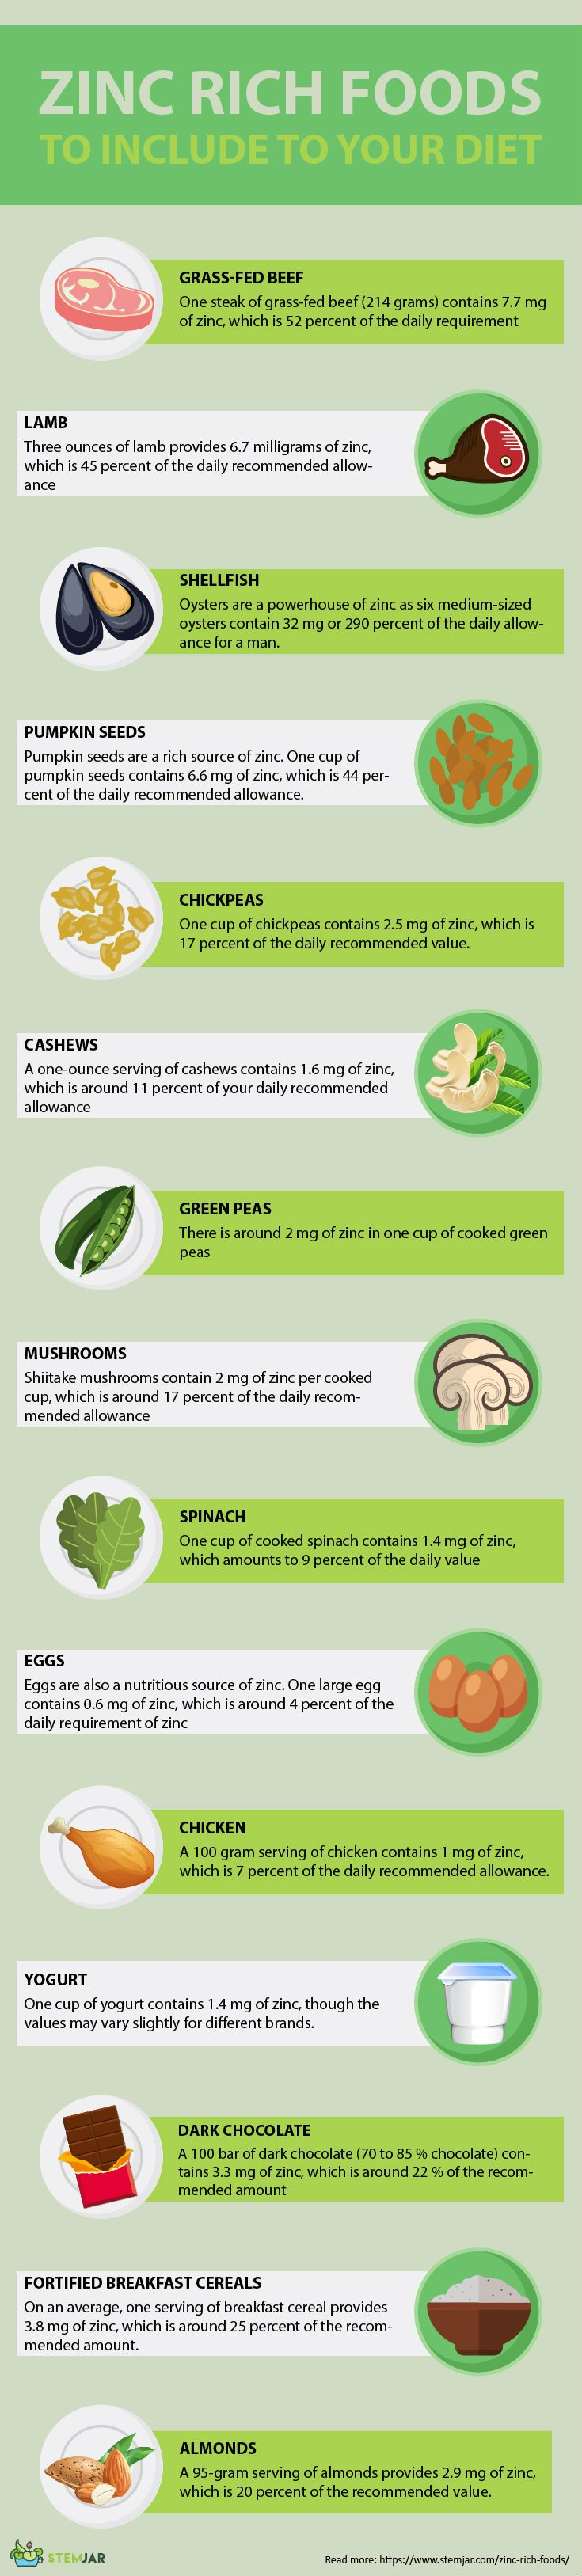 15 Top ZincRich Foods that You Must Include in Your Diet